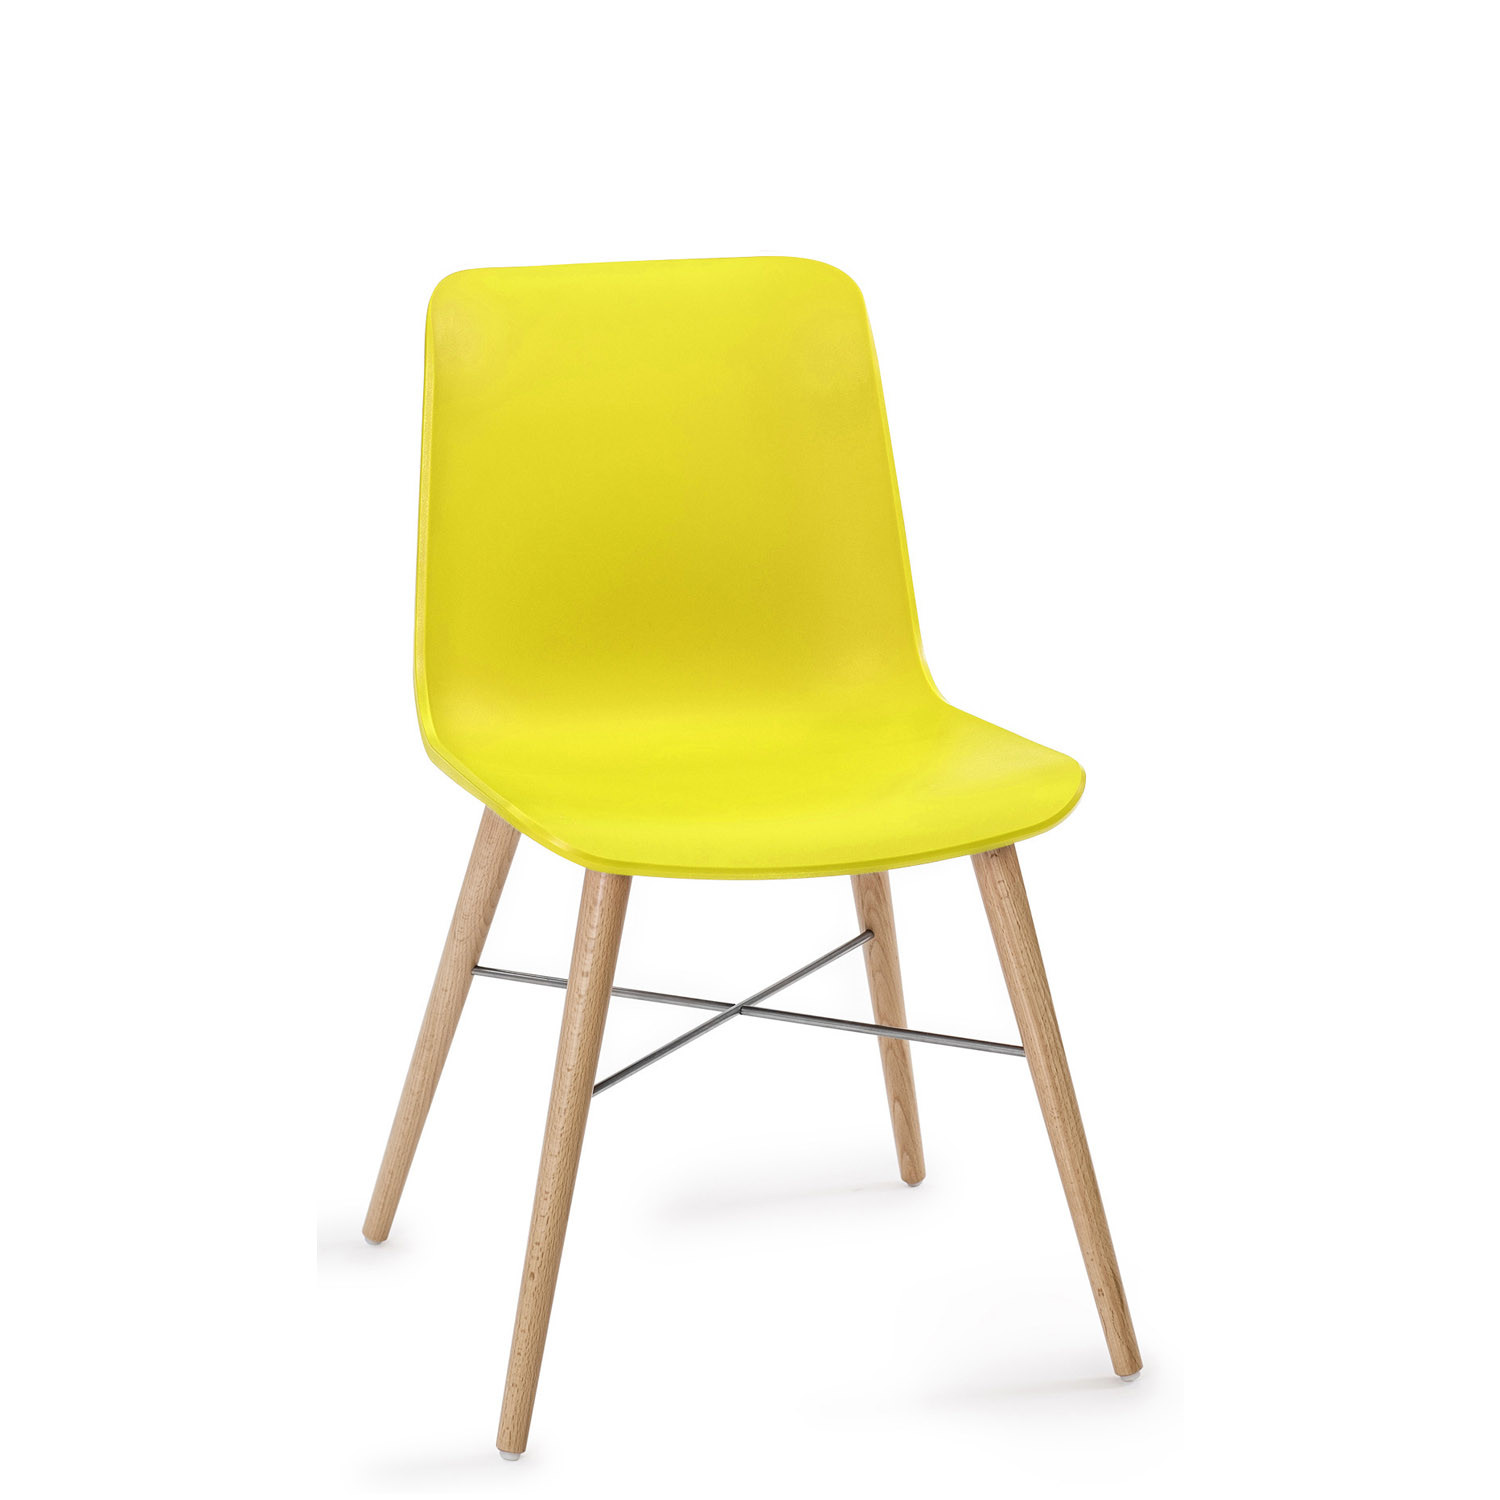 Connection Laurel Chair in Yellow